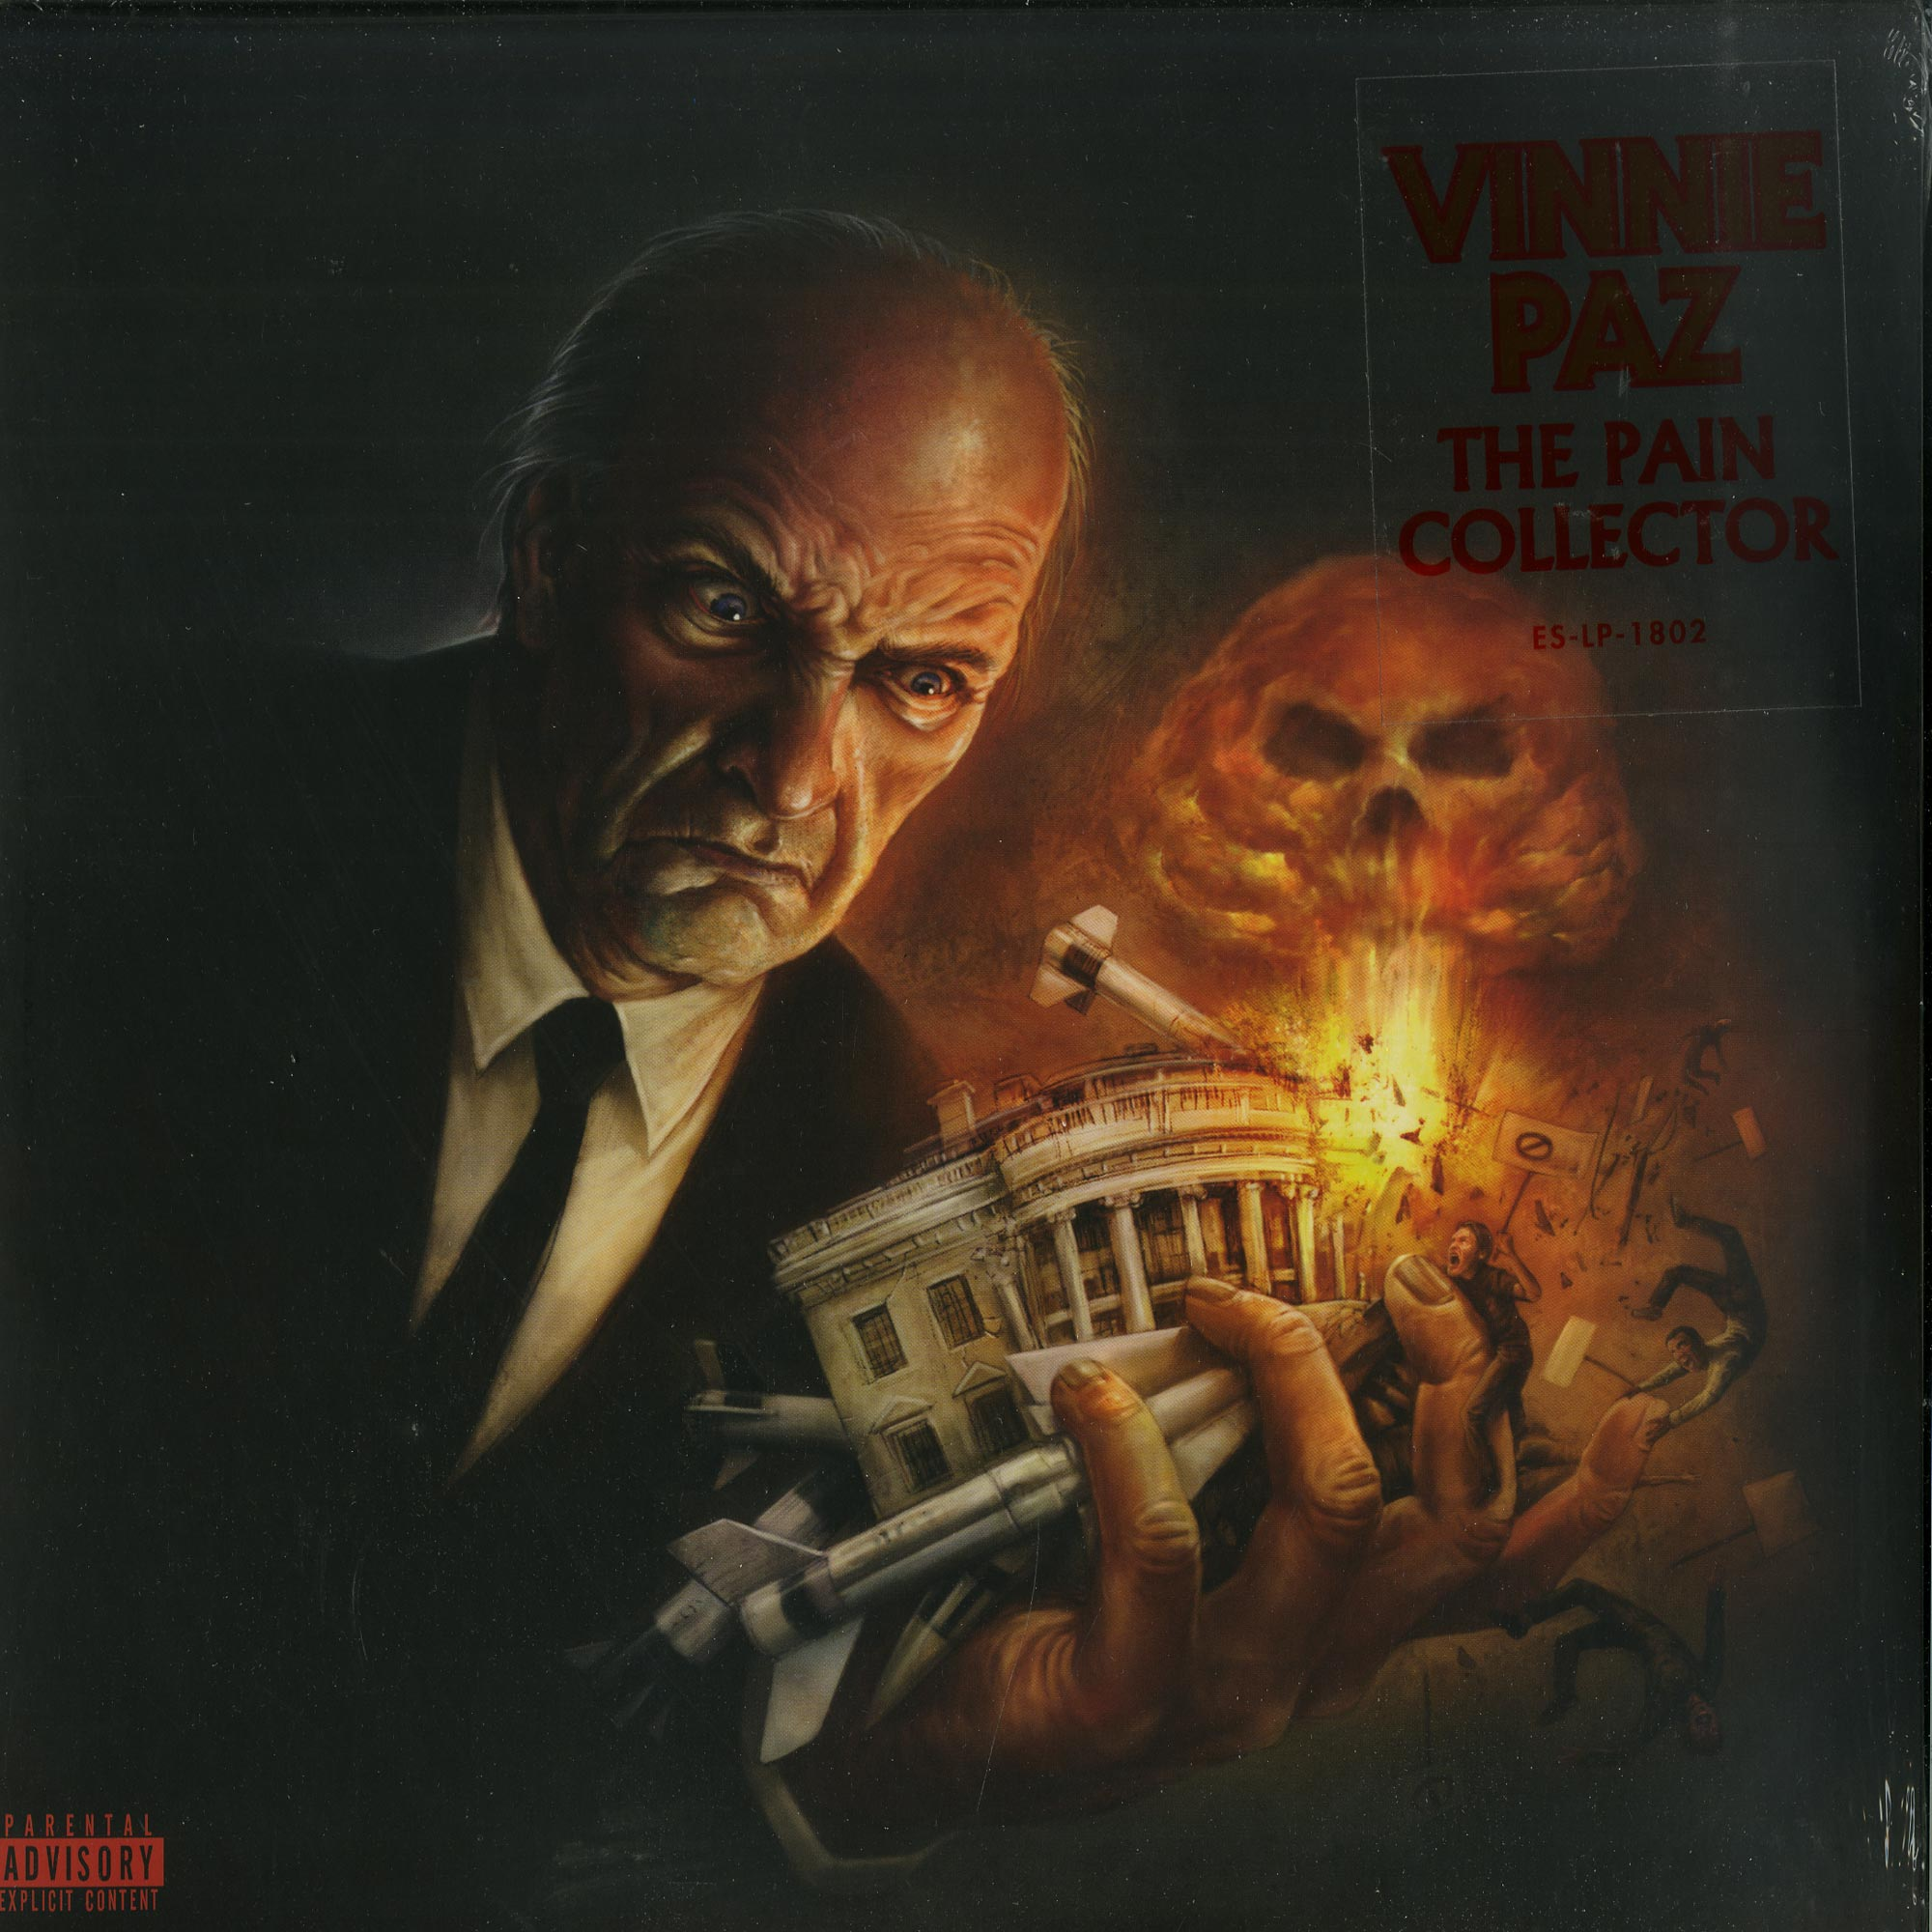 Vinnie Paz - THE PAIN COLLECTOR